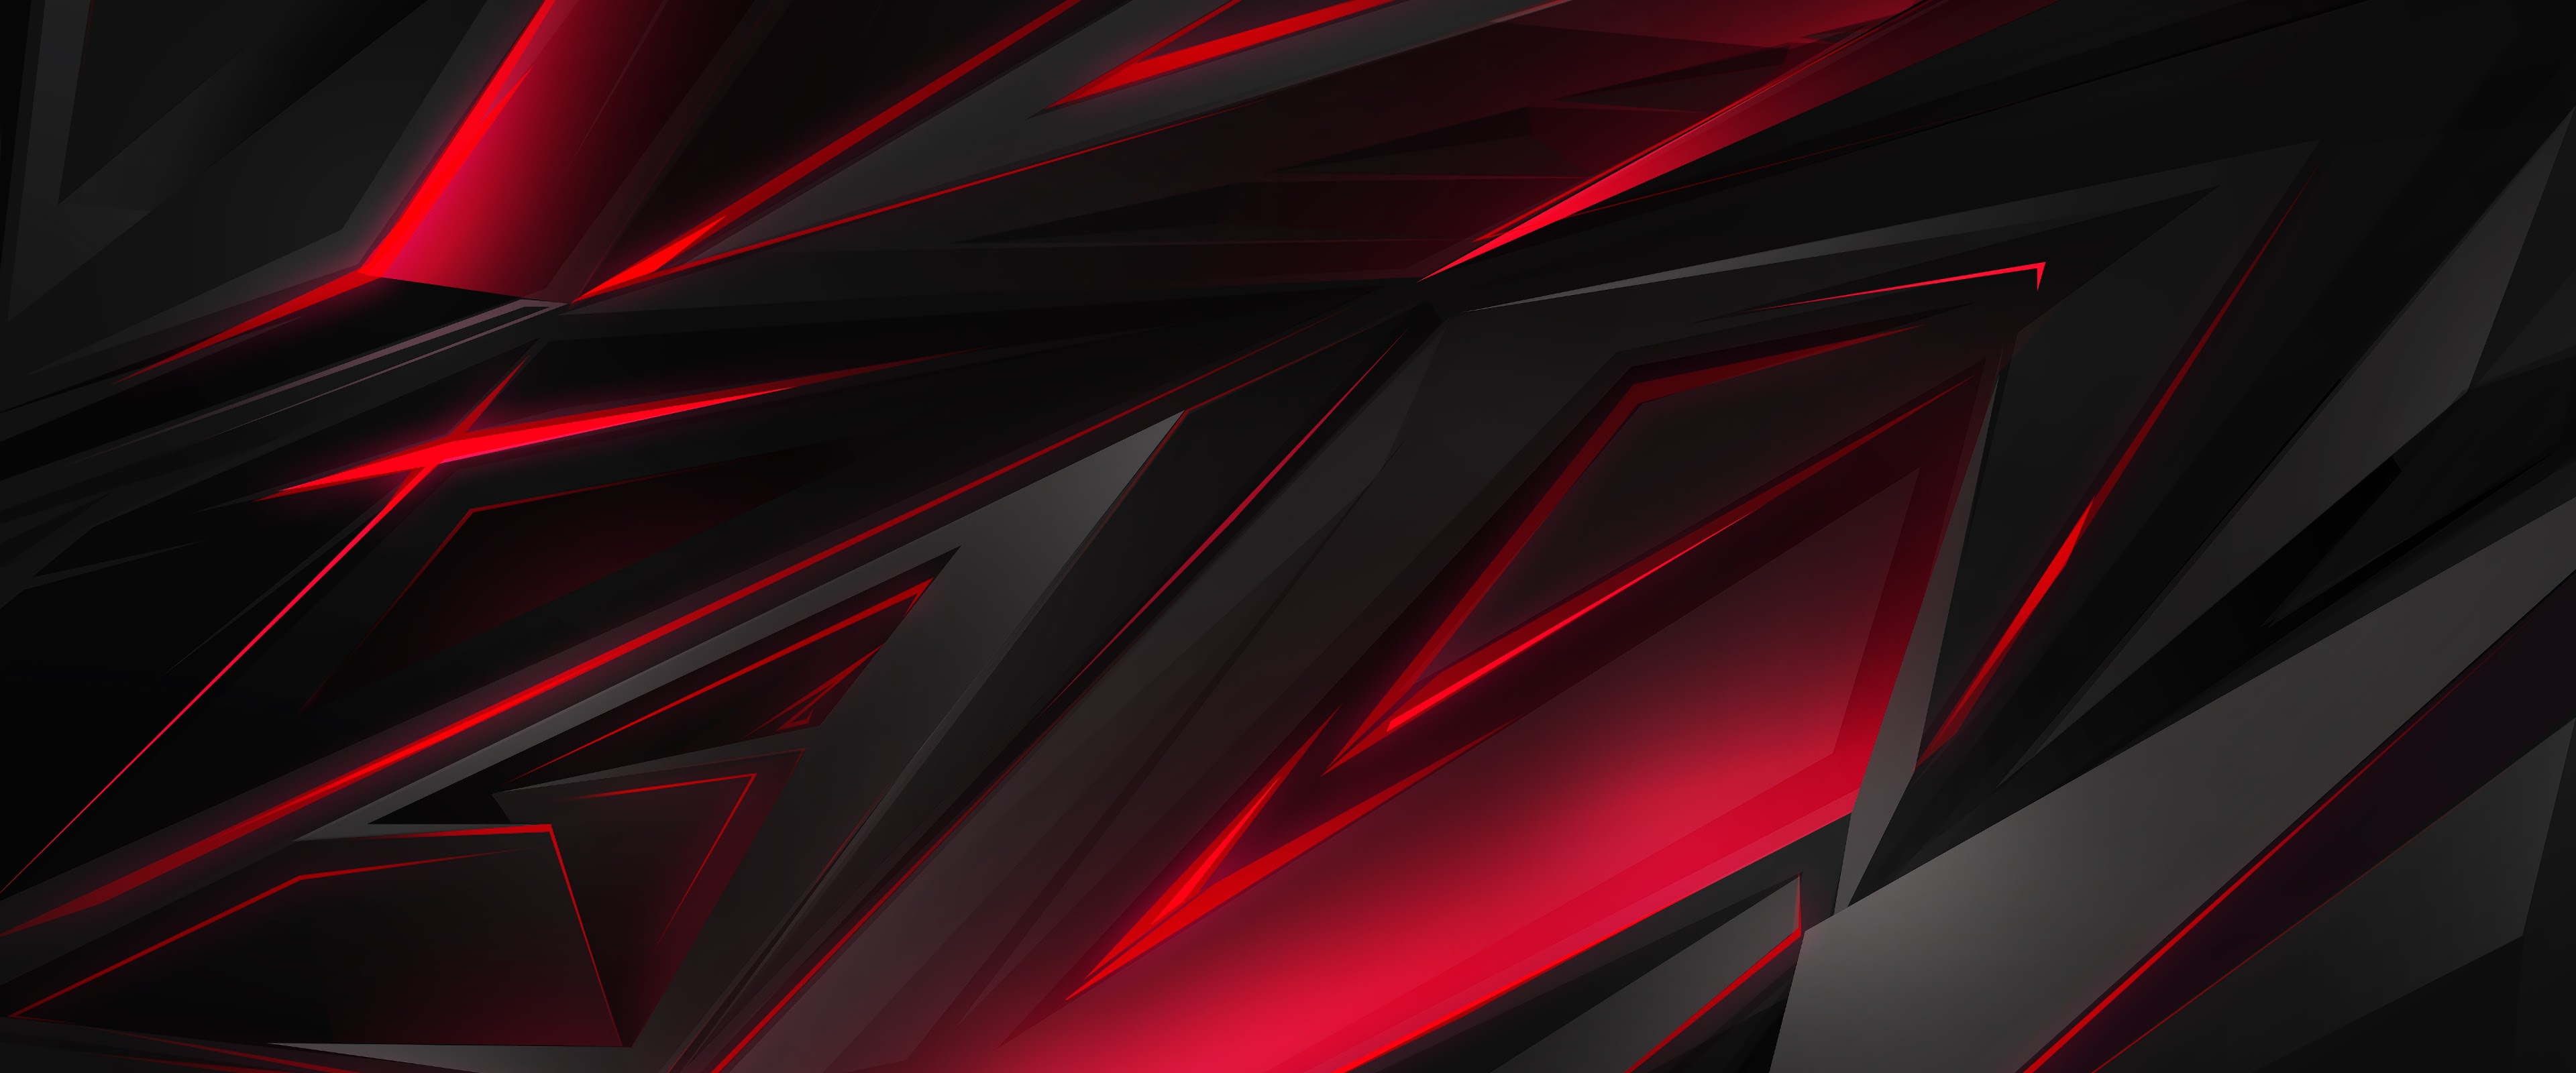 4k Wallpaper Red And Black Posted By Ethan Cunningham